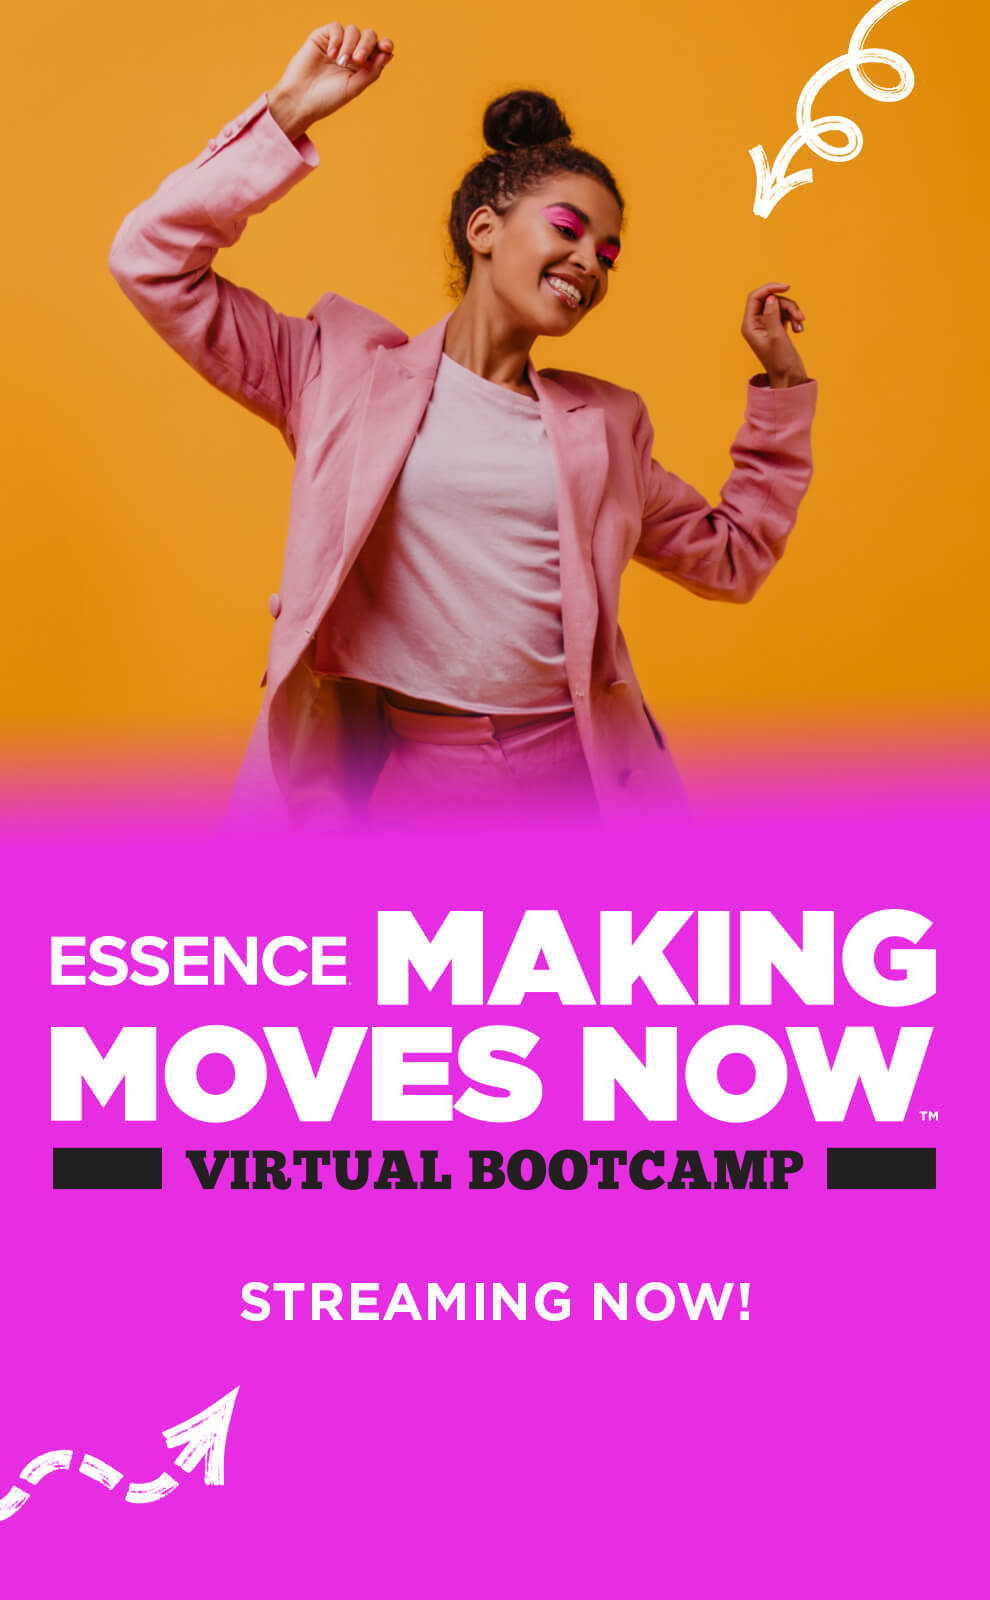 Essence Making Moves Now - Virtual Bootcamp Streaming Now